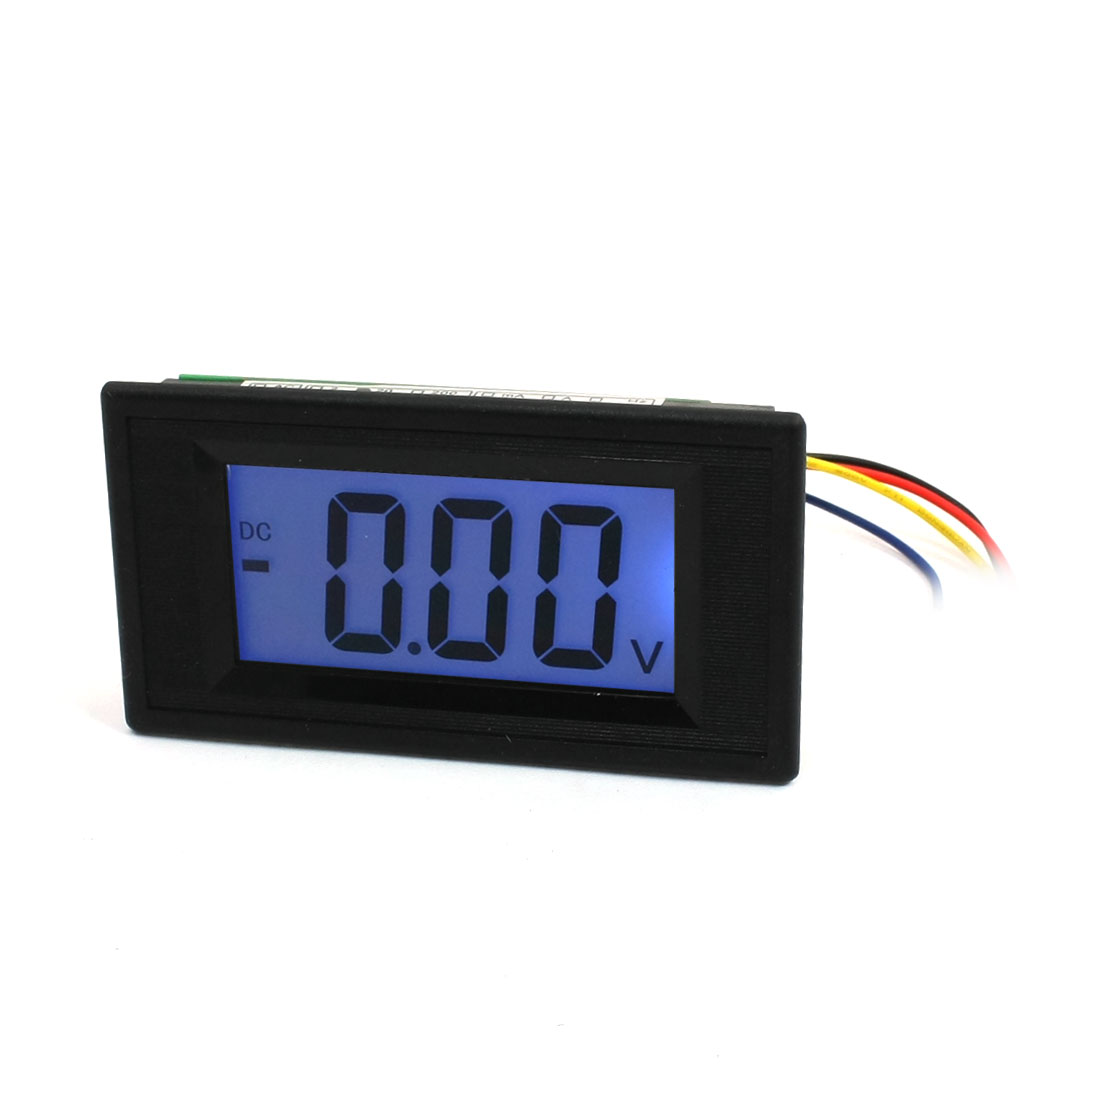 Panel Mount LCD Display Volt Tester Gauge Voltmeter DC 20V